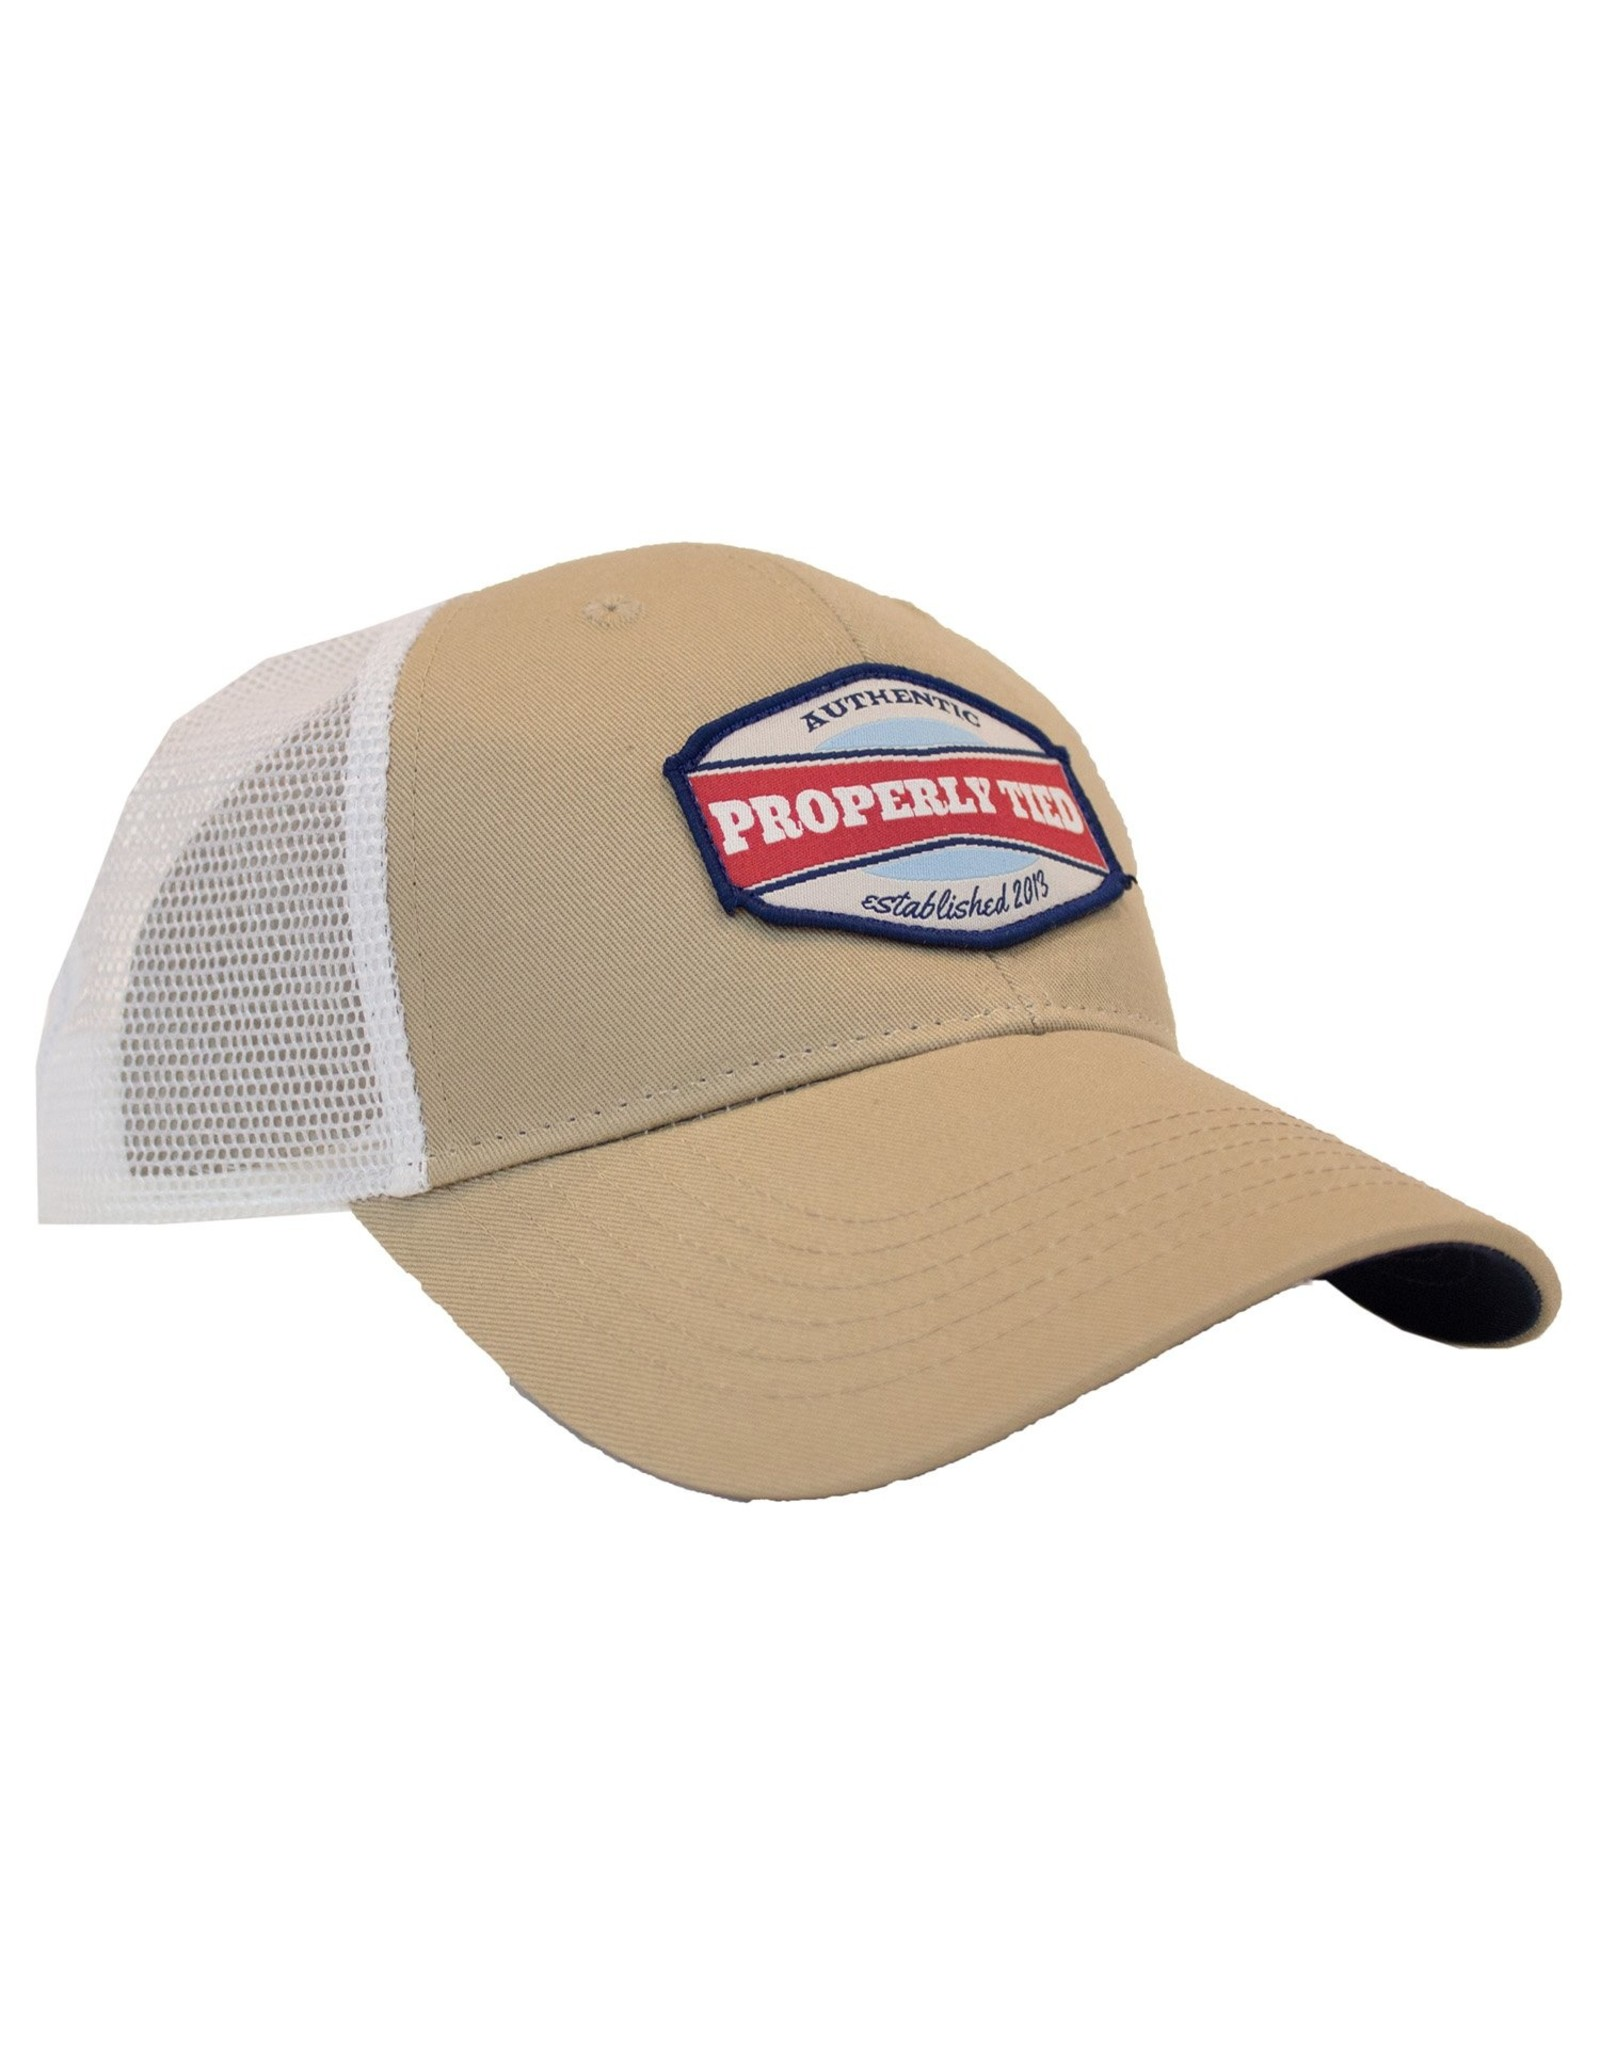 Properly Tied PT Trucker Hat- Vintage Badge